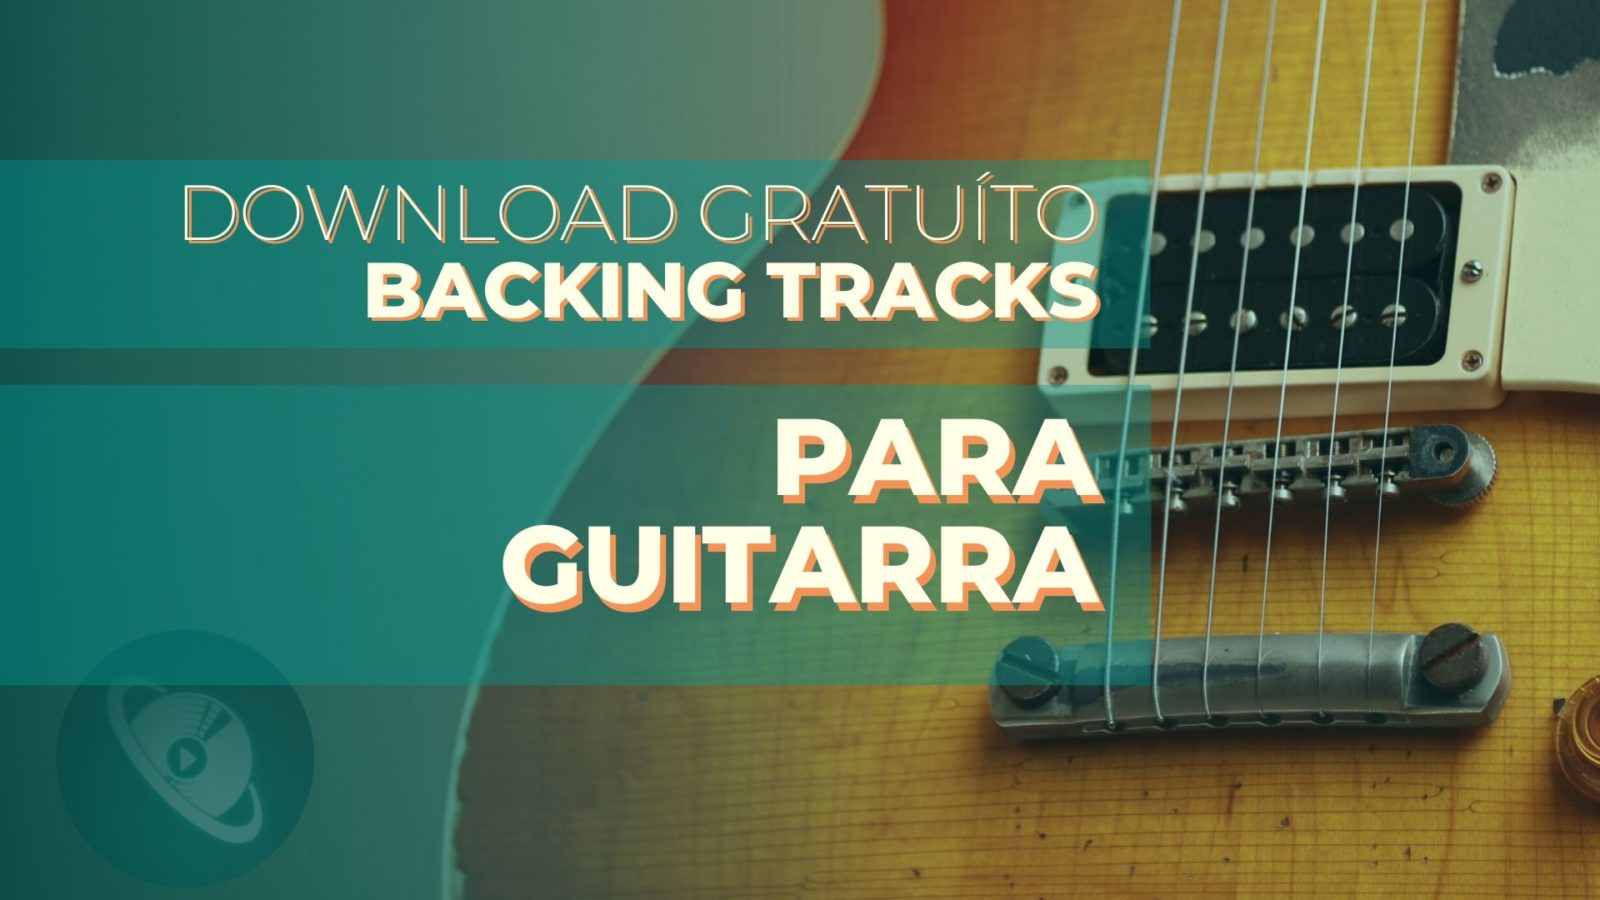 Backing tracks para praticar - Planeta Música